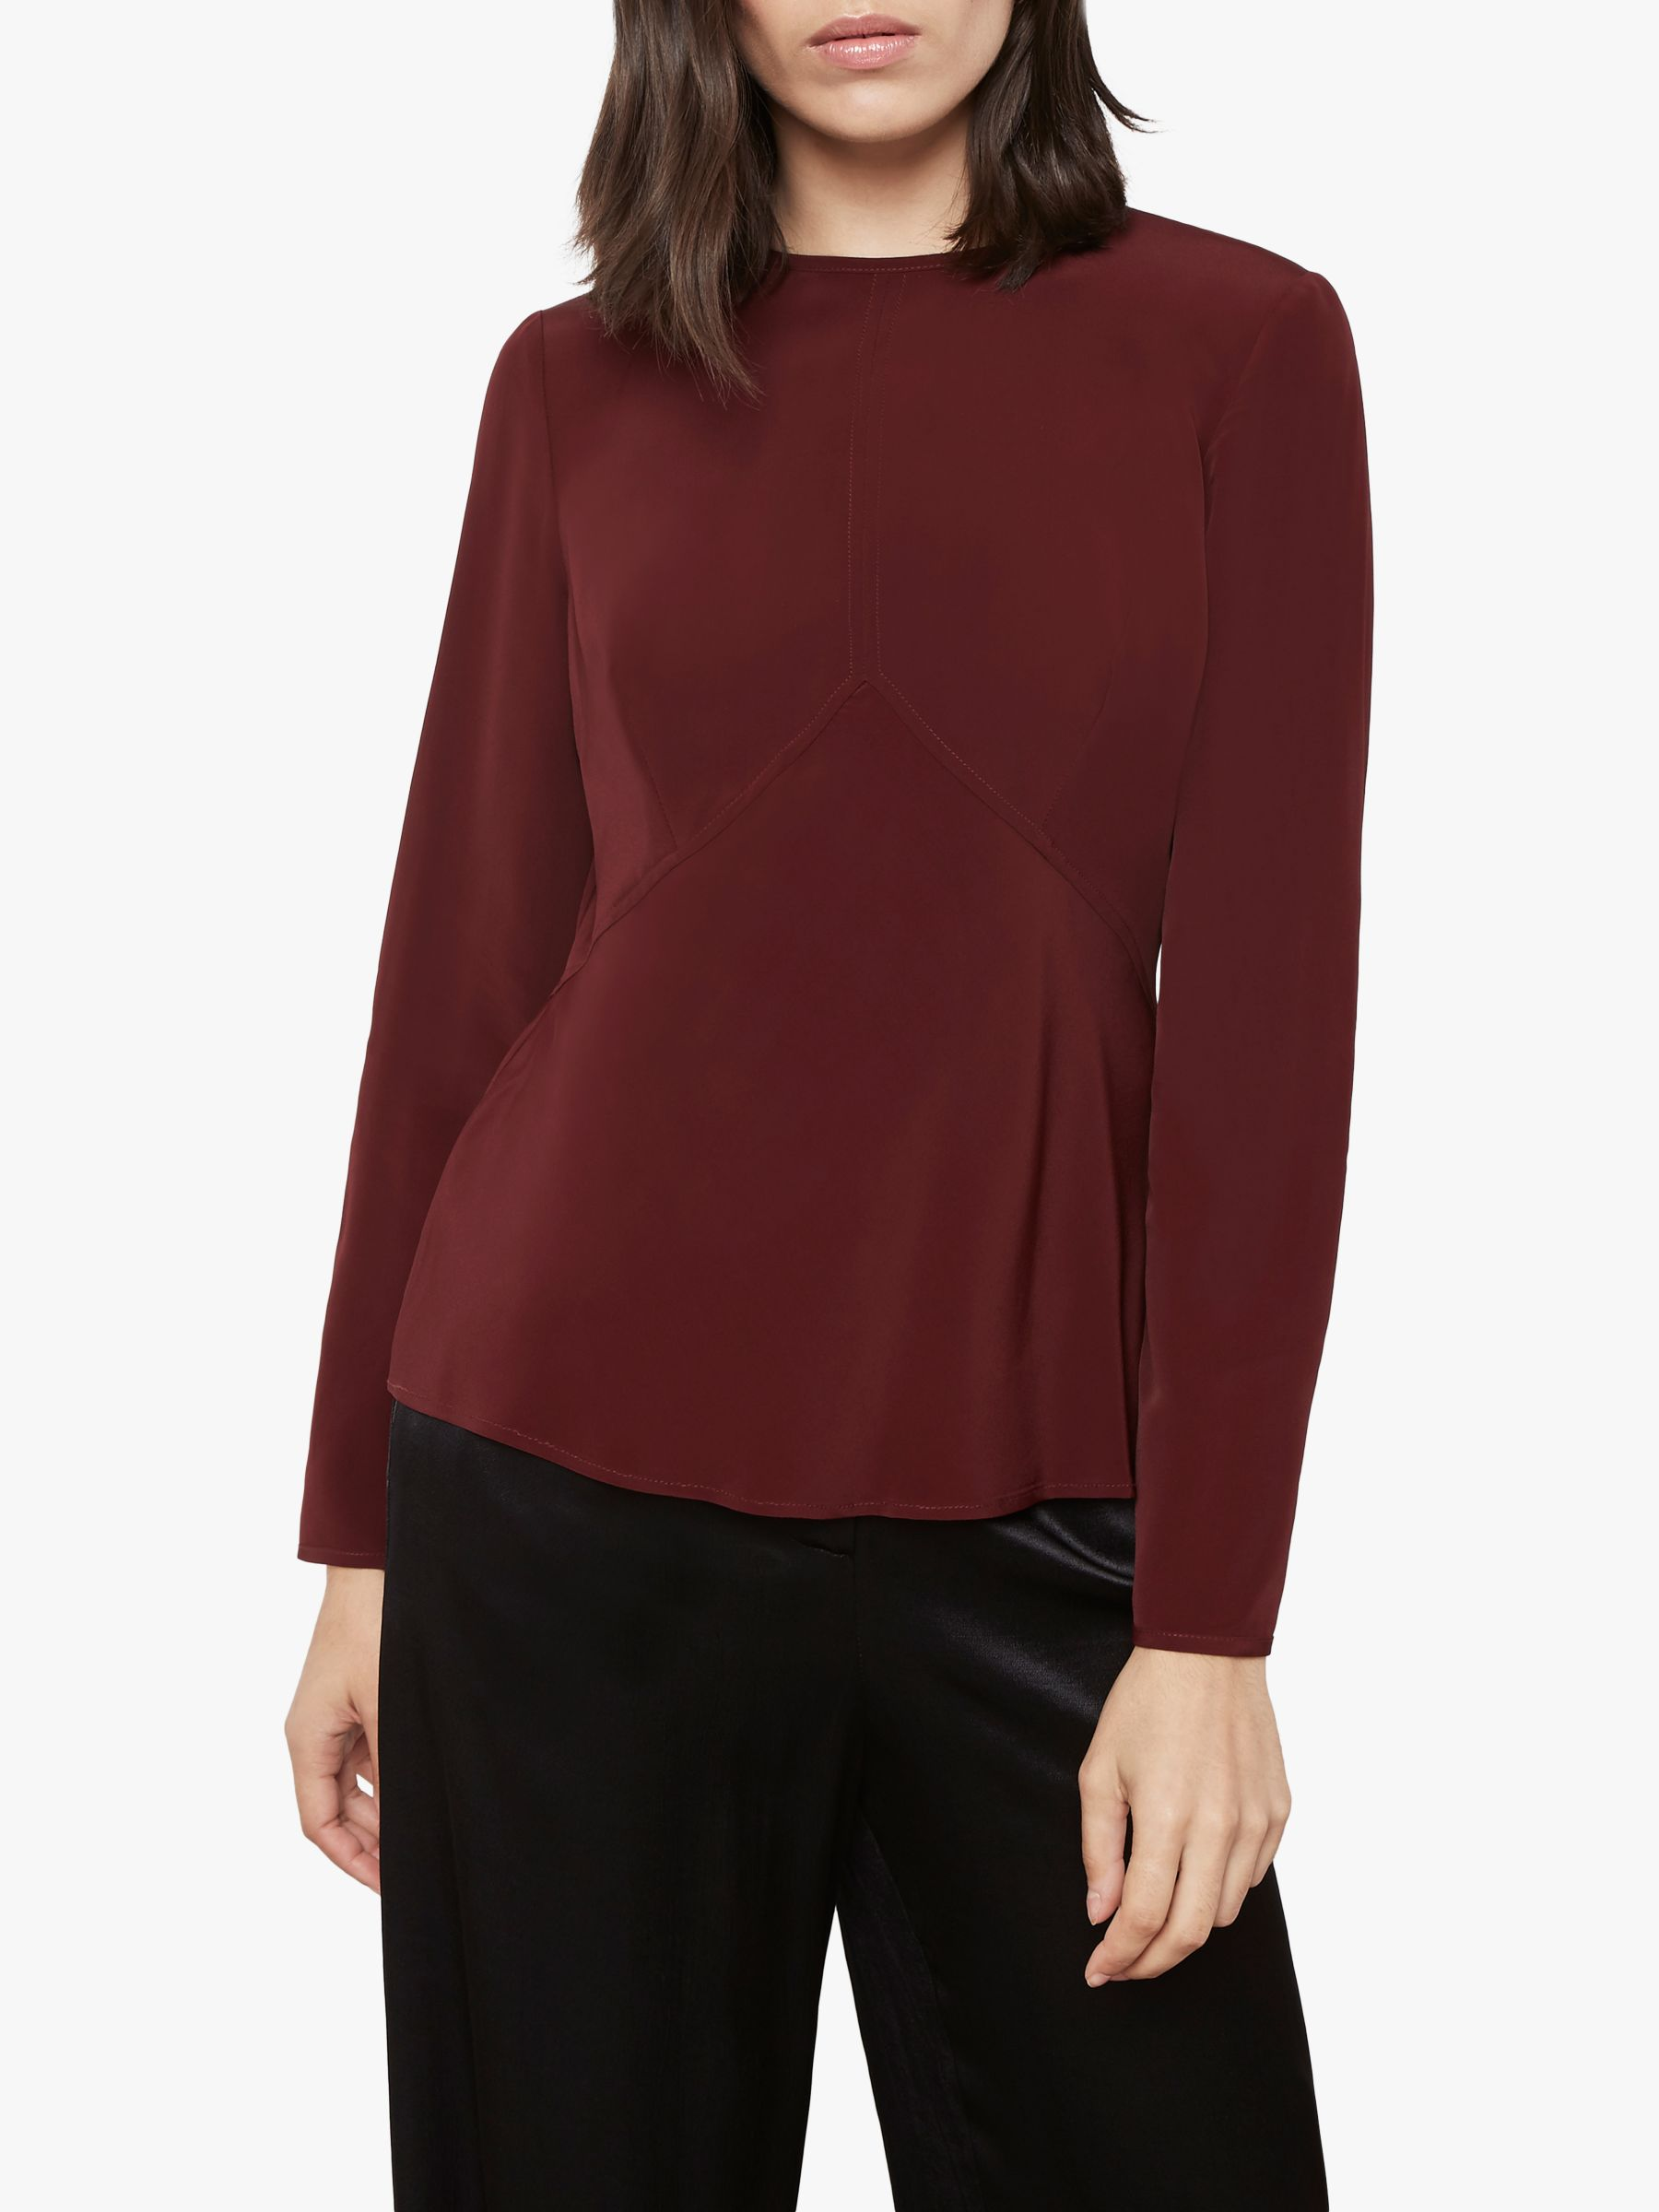 Finery Finery Abbot Tie Back Top, Red